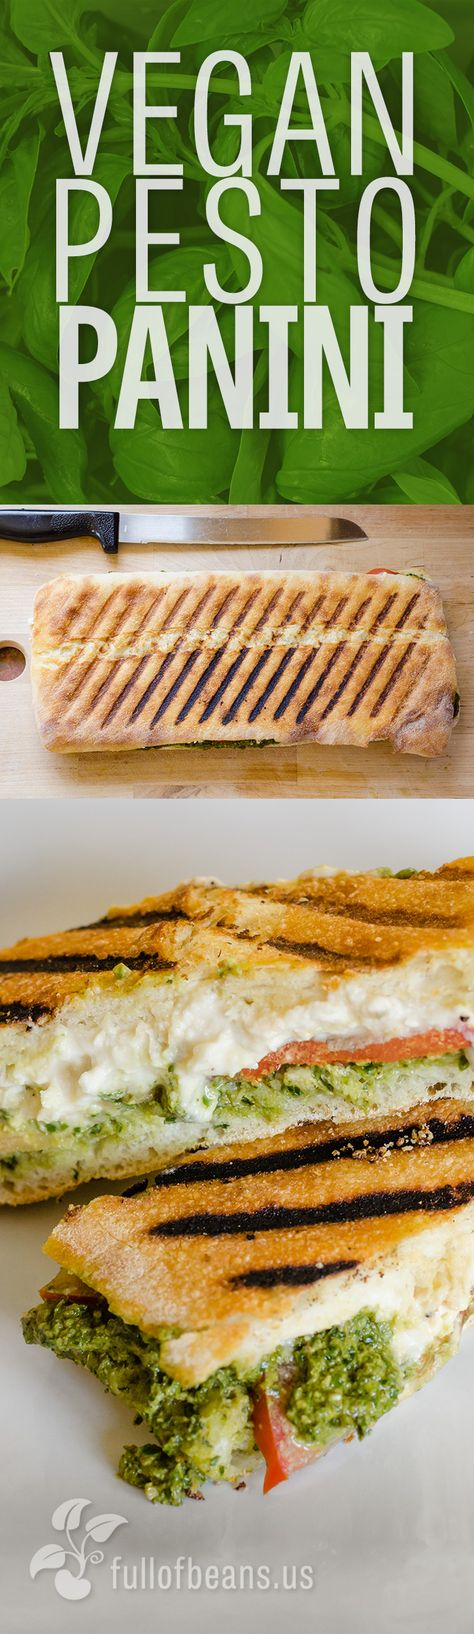 Get that Weekend or Game Day Vibe! This vegan pesto panini combines the flavors of ripe tomato and the classic bold taste of pesto with the creaminess of a spreadable vegan cheese. Delish! We even have a video of making it! :-) #vegan #pesto #panini #partyfood